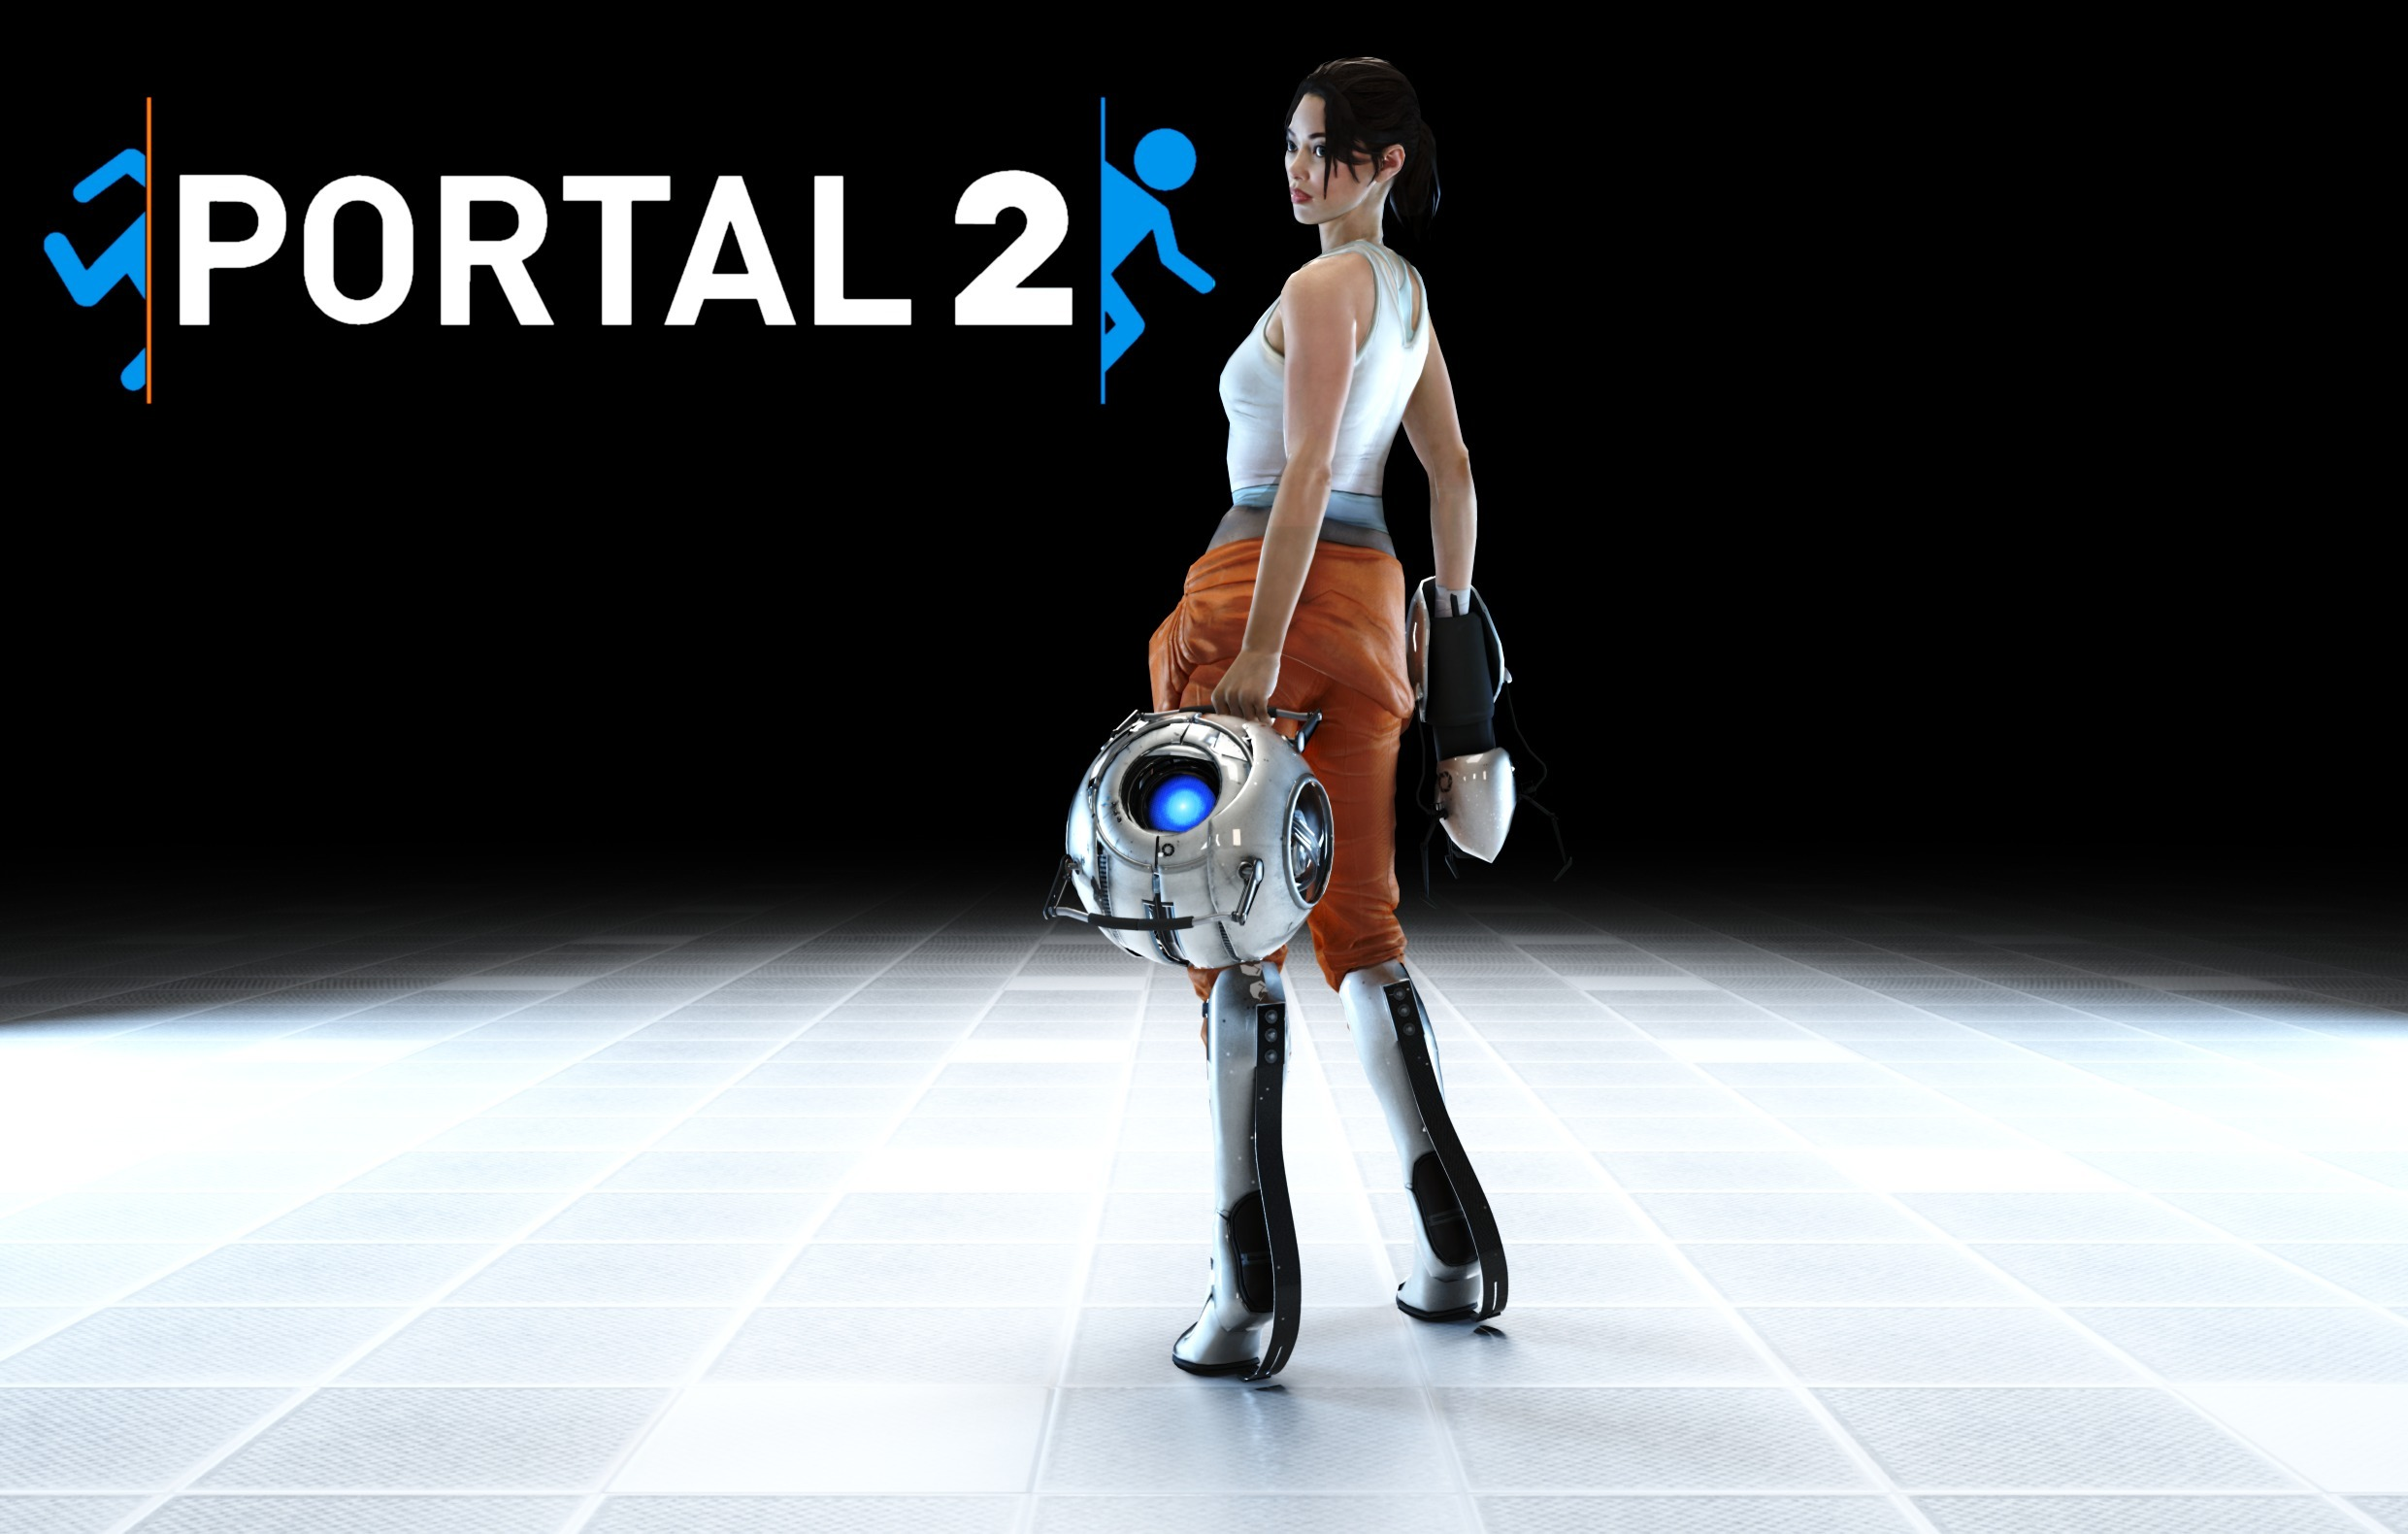 portal 2 download multiplayer